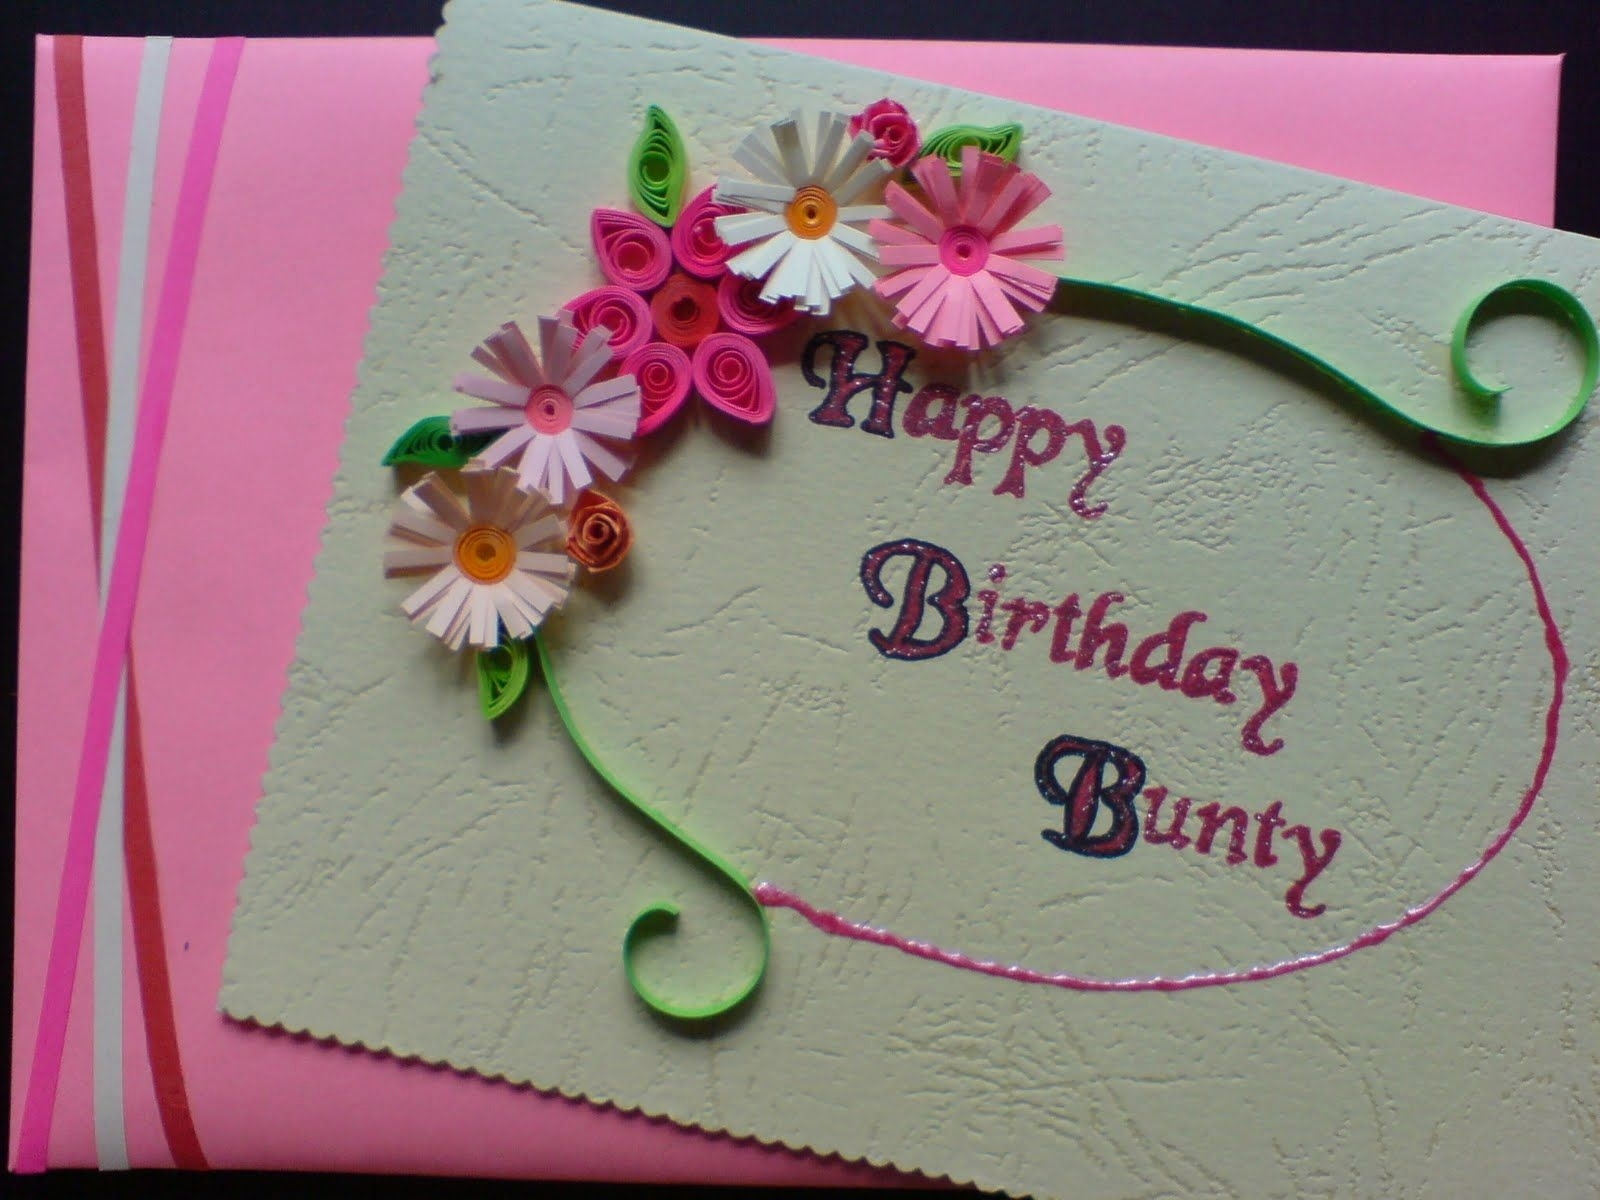 handmade greeting cards for birthday ; lawson-cards-birthday-inspirational-handmade-greeting-cards-for-an-extra-special-person-of-lawson-cards-birthday